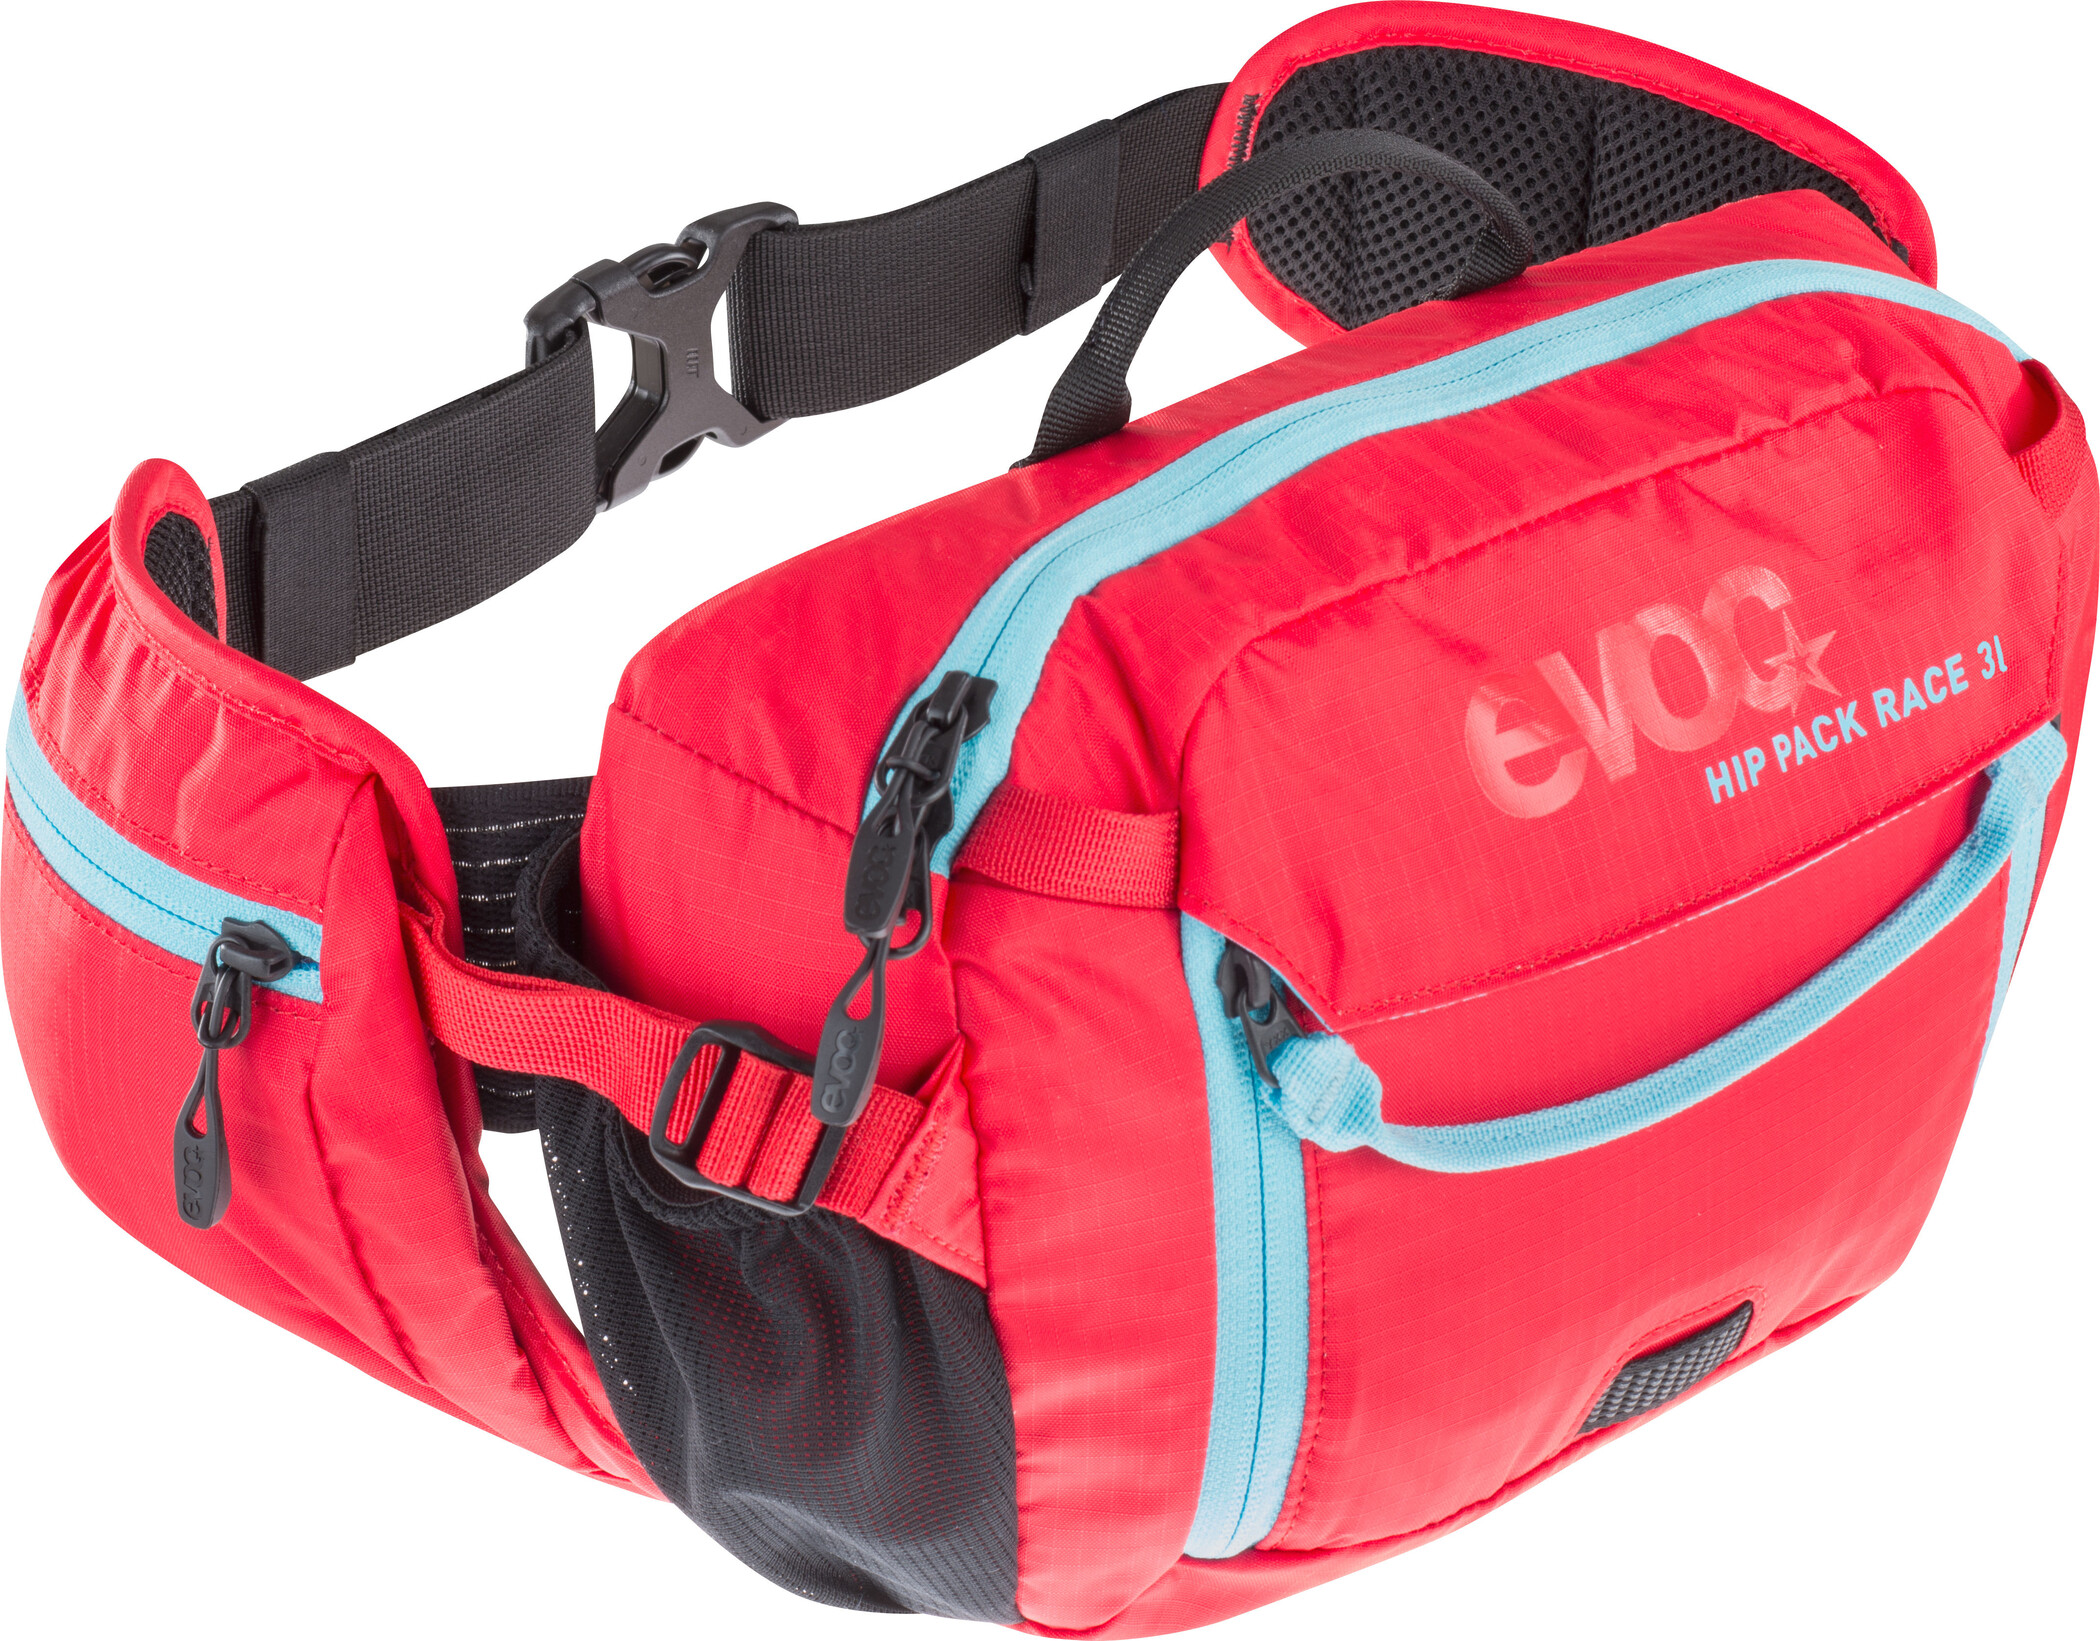 EVOC Hip Pack Race Drikkebælte 3 L, red-neon blue | Waist bags